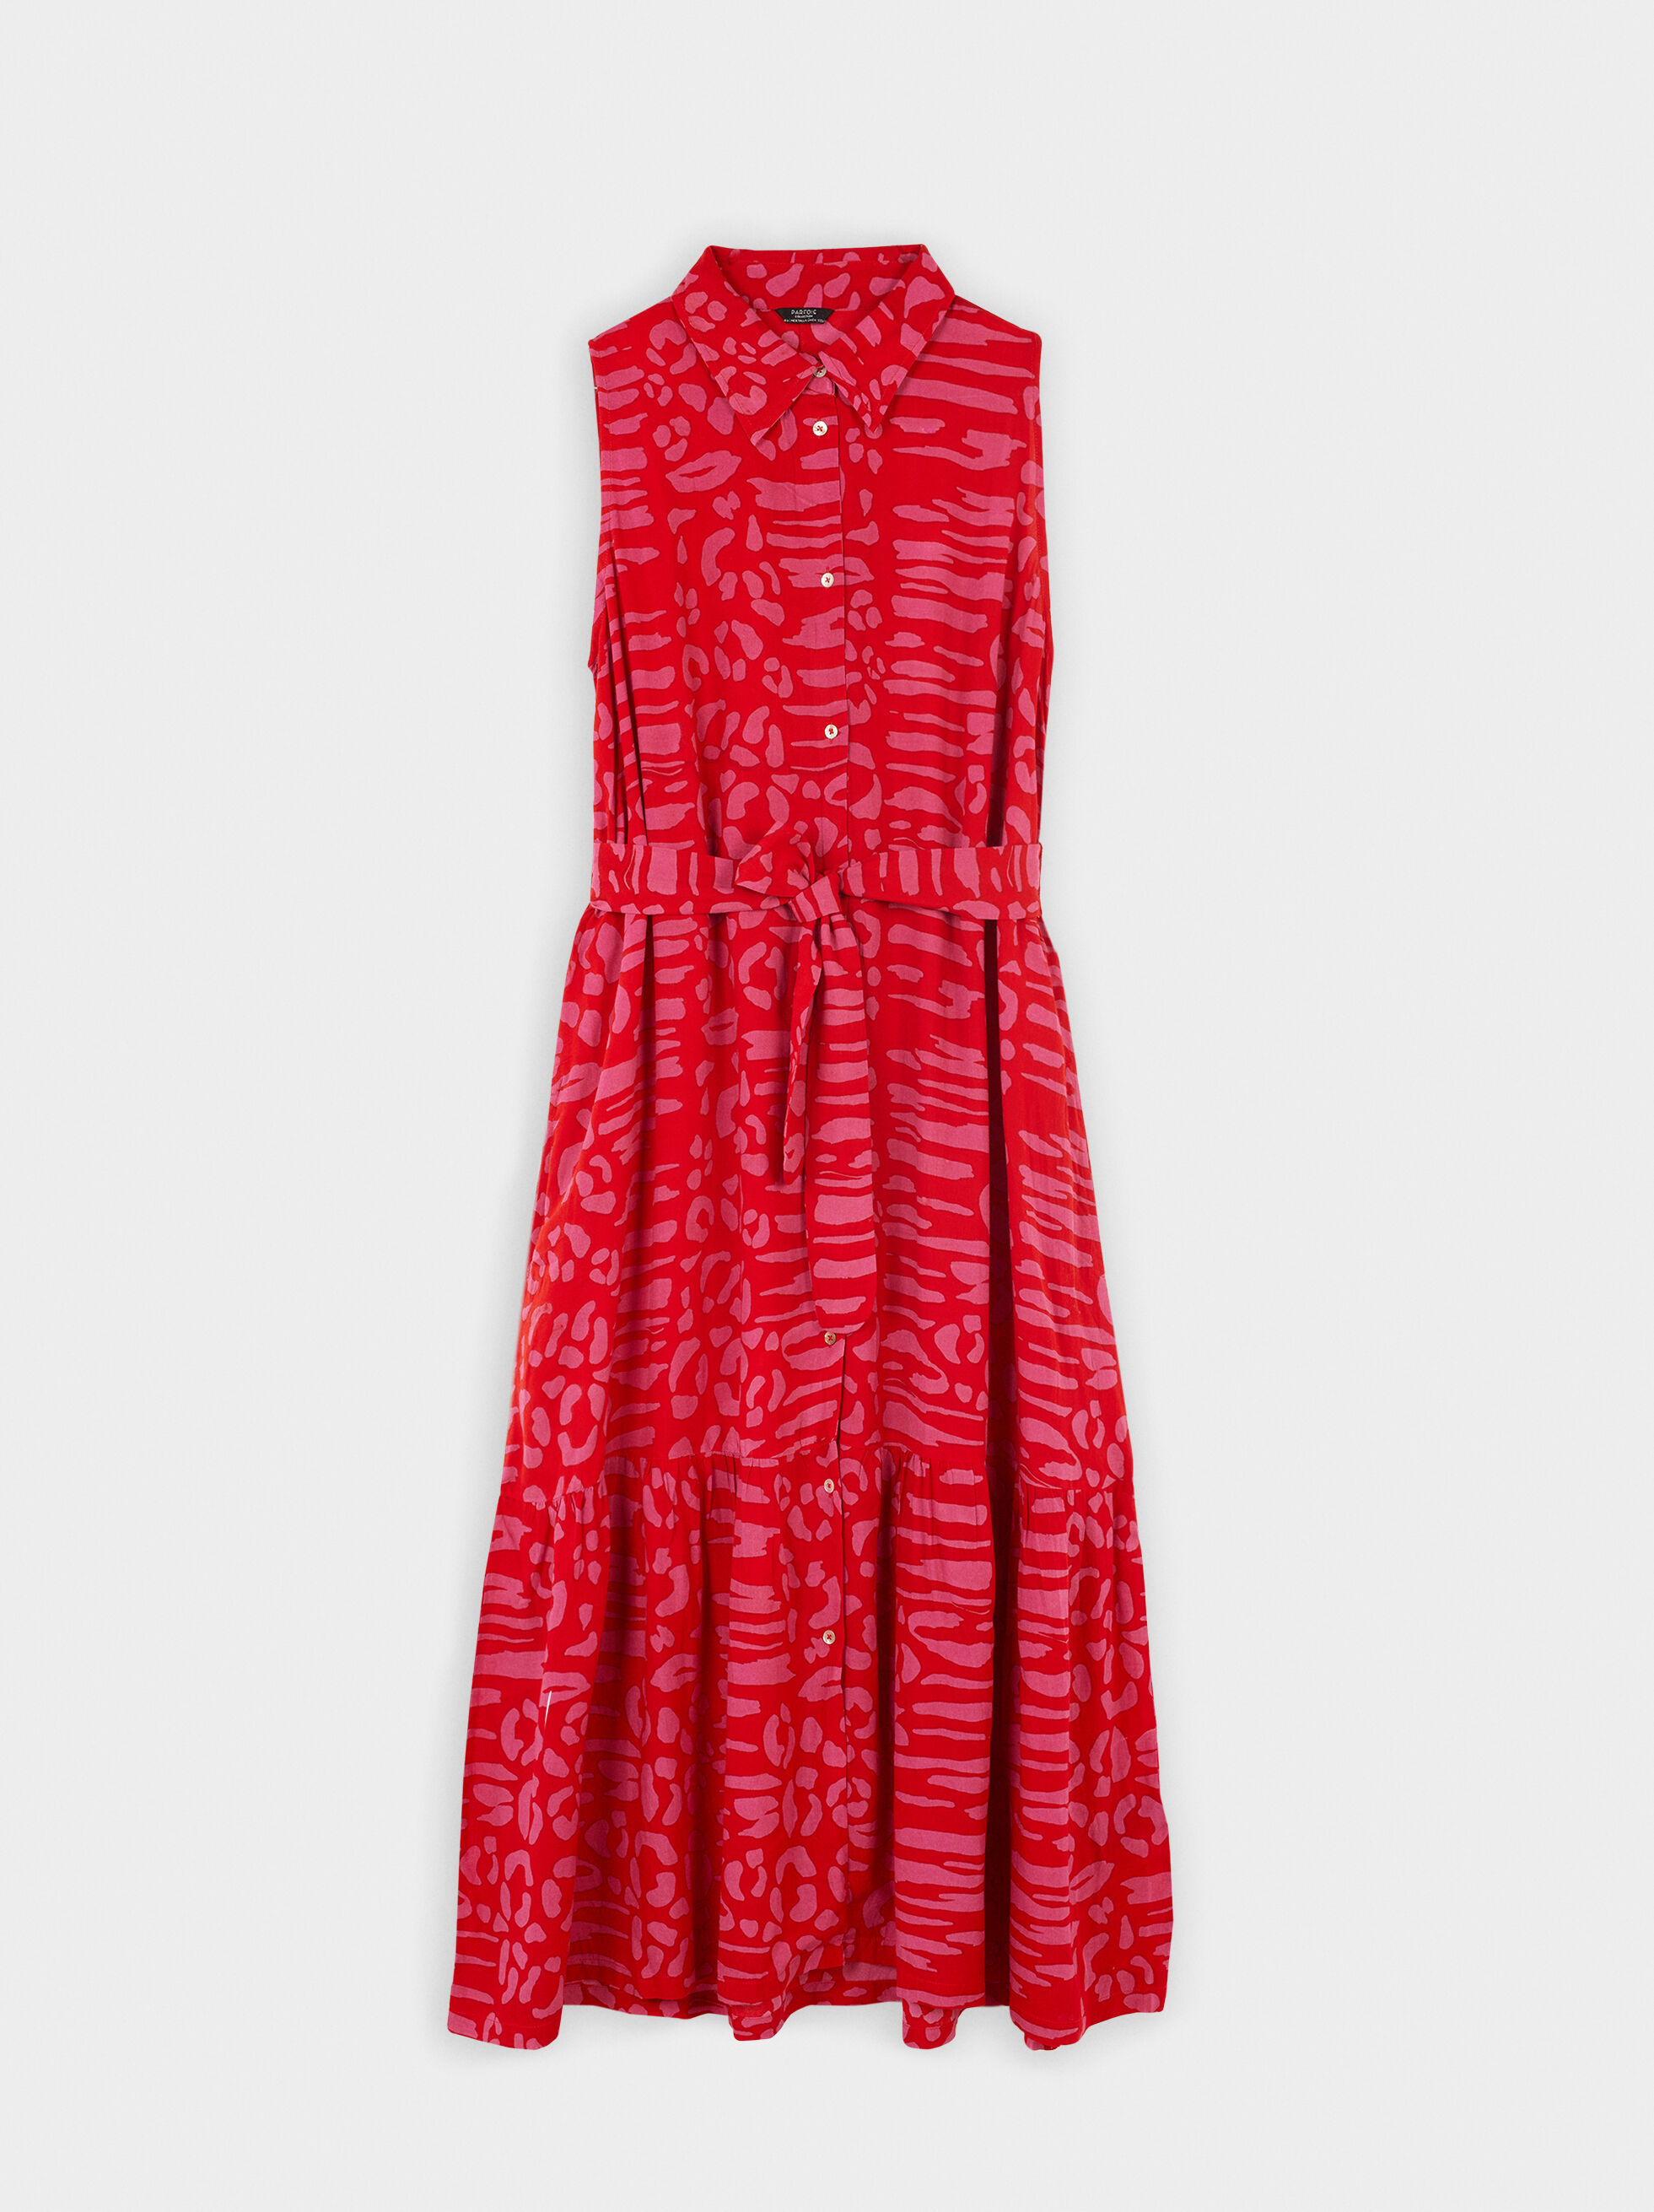 Printed Button-Up Dress, Red, hi-res